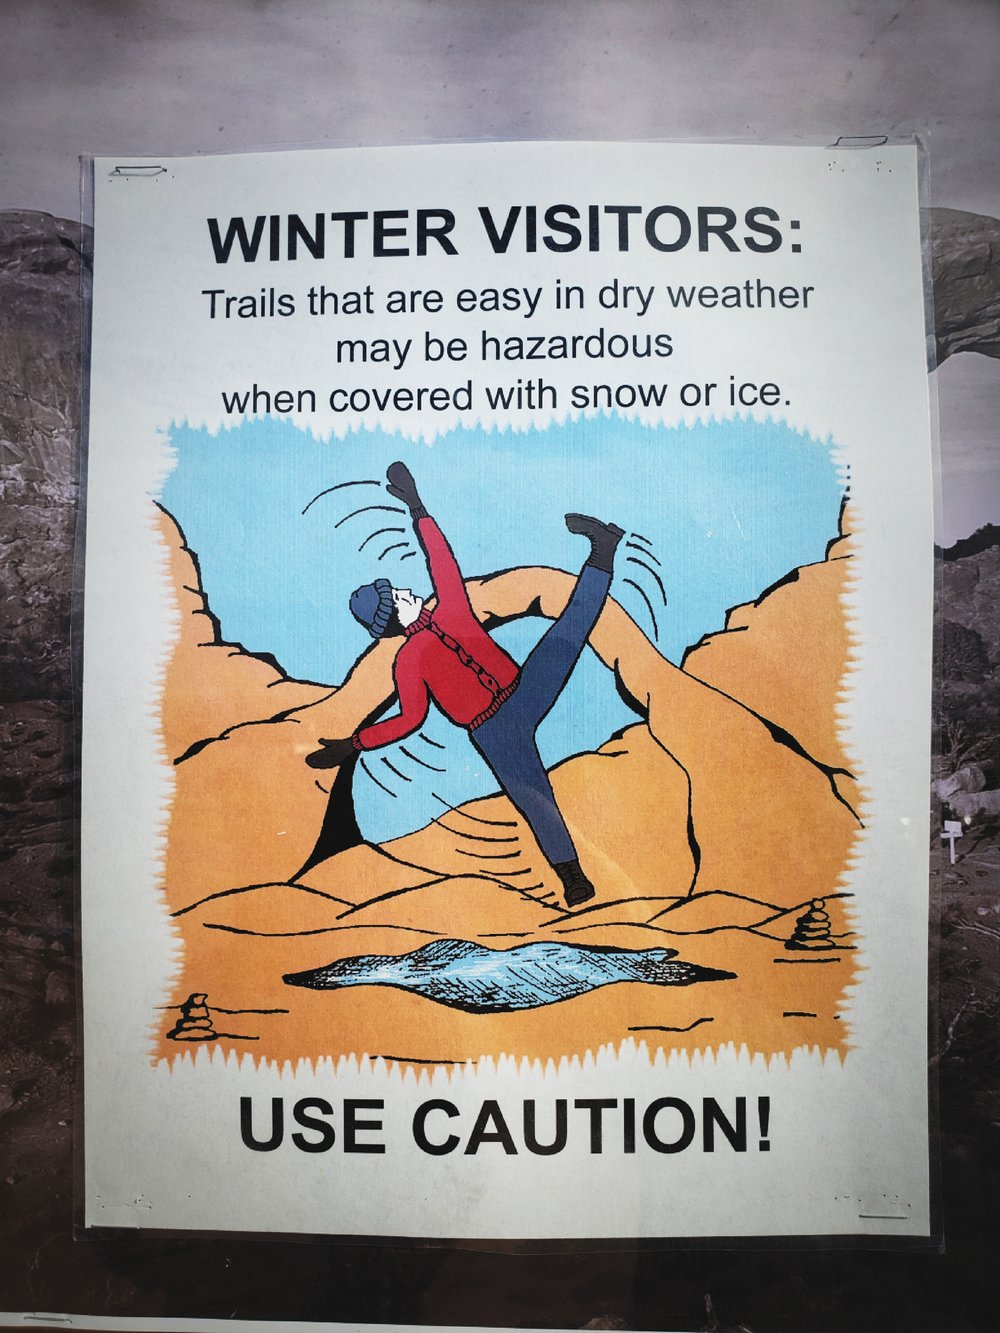 Winter can quickly change the trail conditions, and you might fall like this guy.